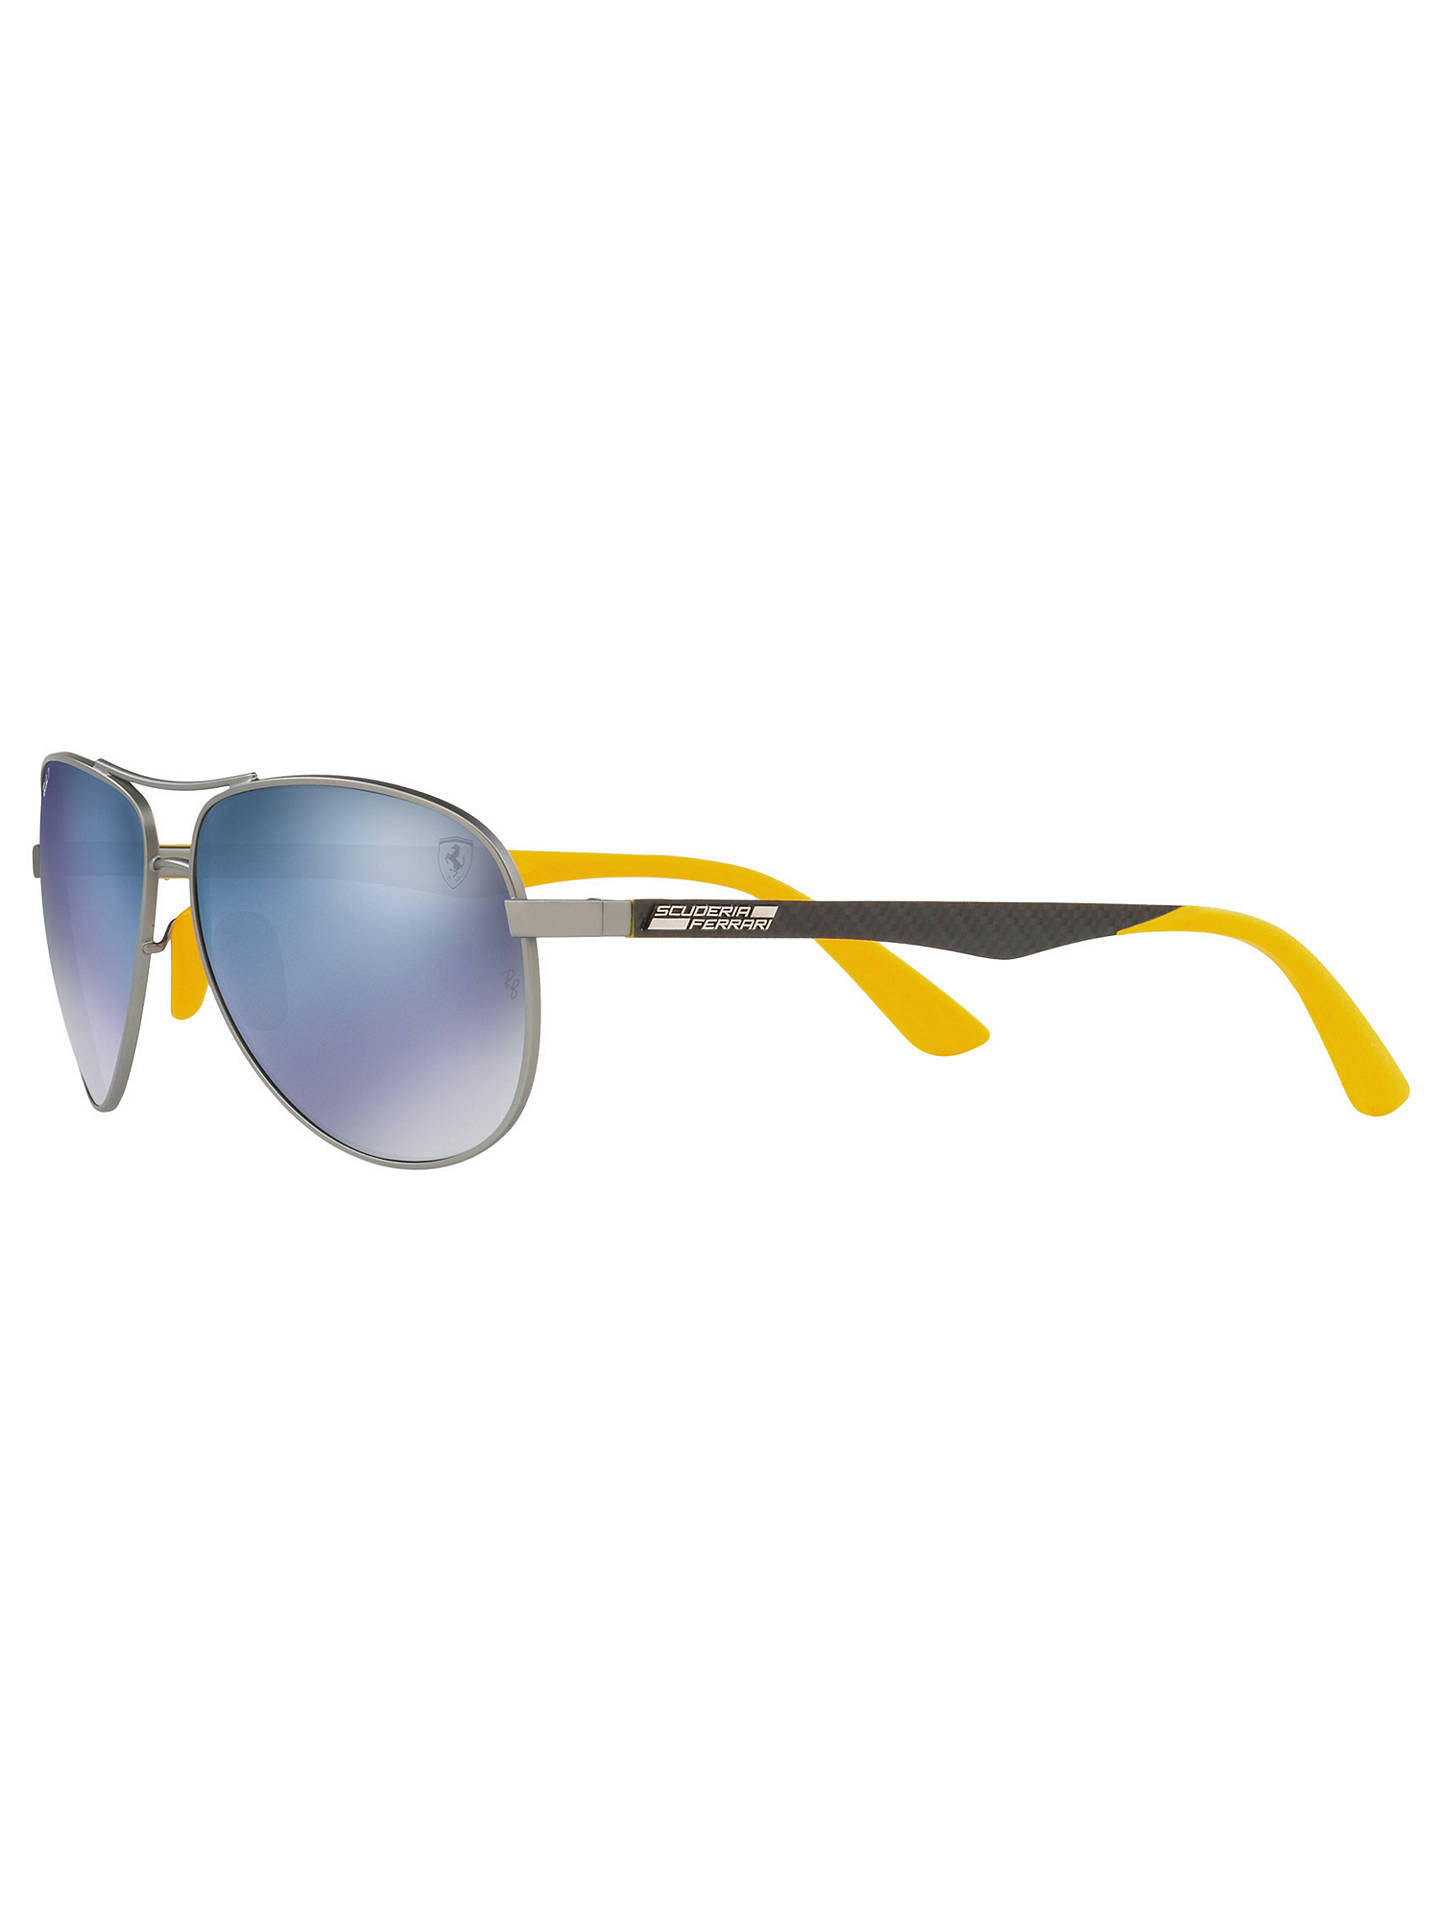 Buy Ray-Ban RB8313M Polarised Scuderia Ferrari Aviator Sunglasses, Grey/Mirror Blue Online at johnlewis.com